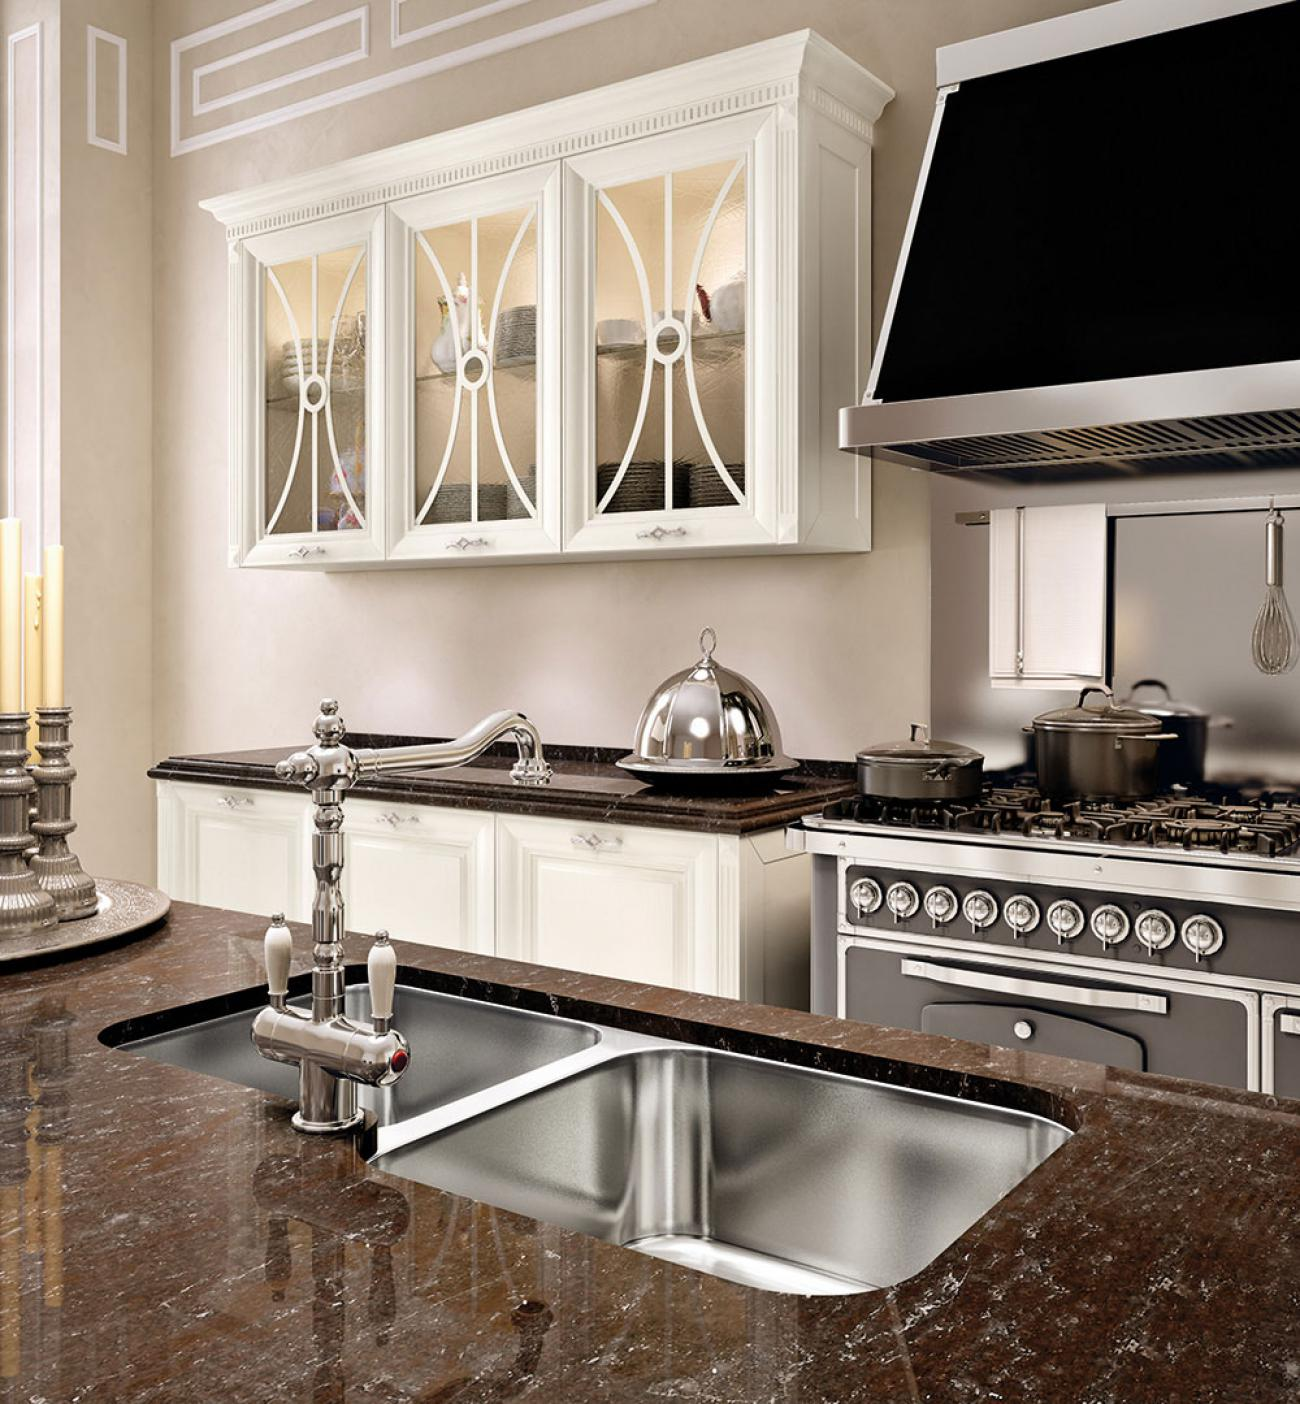 Classic Kitchens - Pantheon - 11